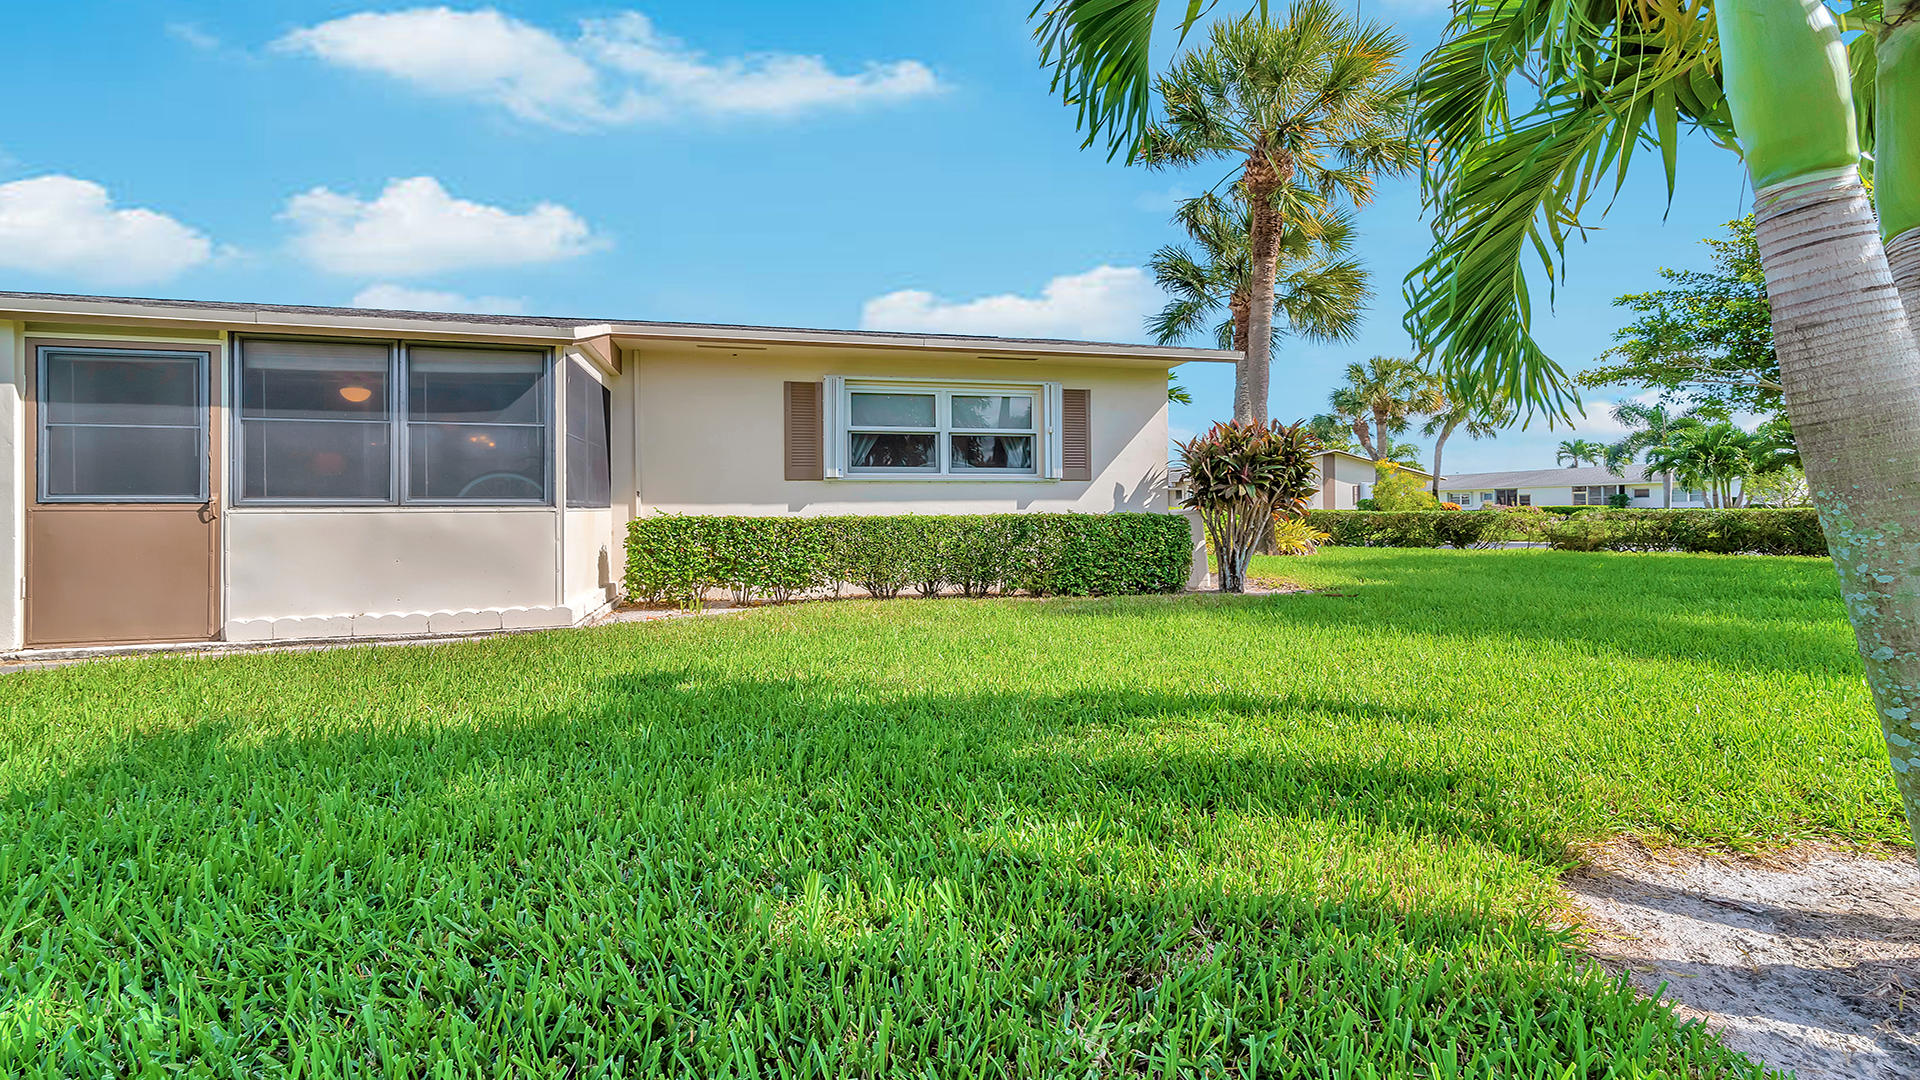 2564 Emory Drive A West Palm Beach, FL 33415 small photo 18